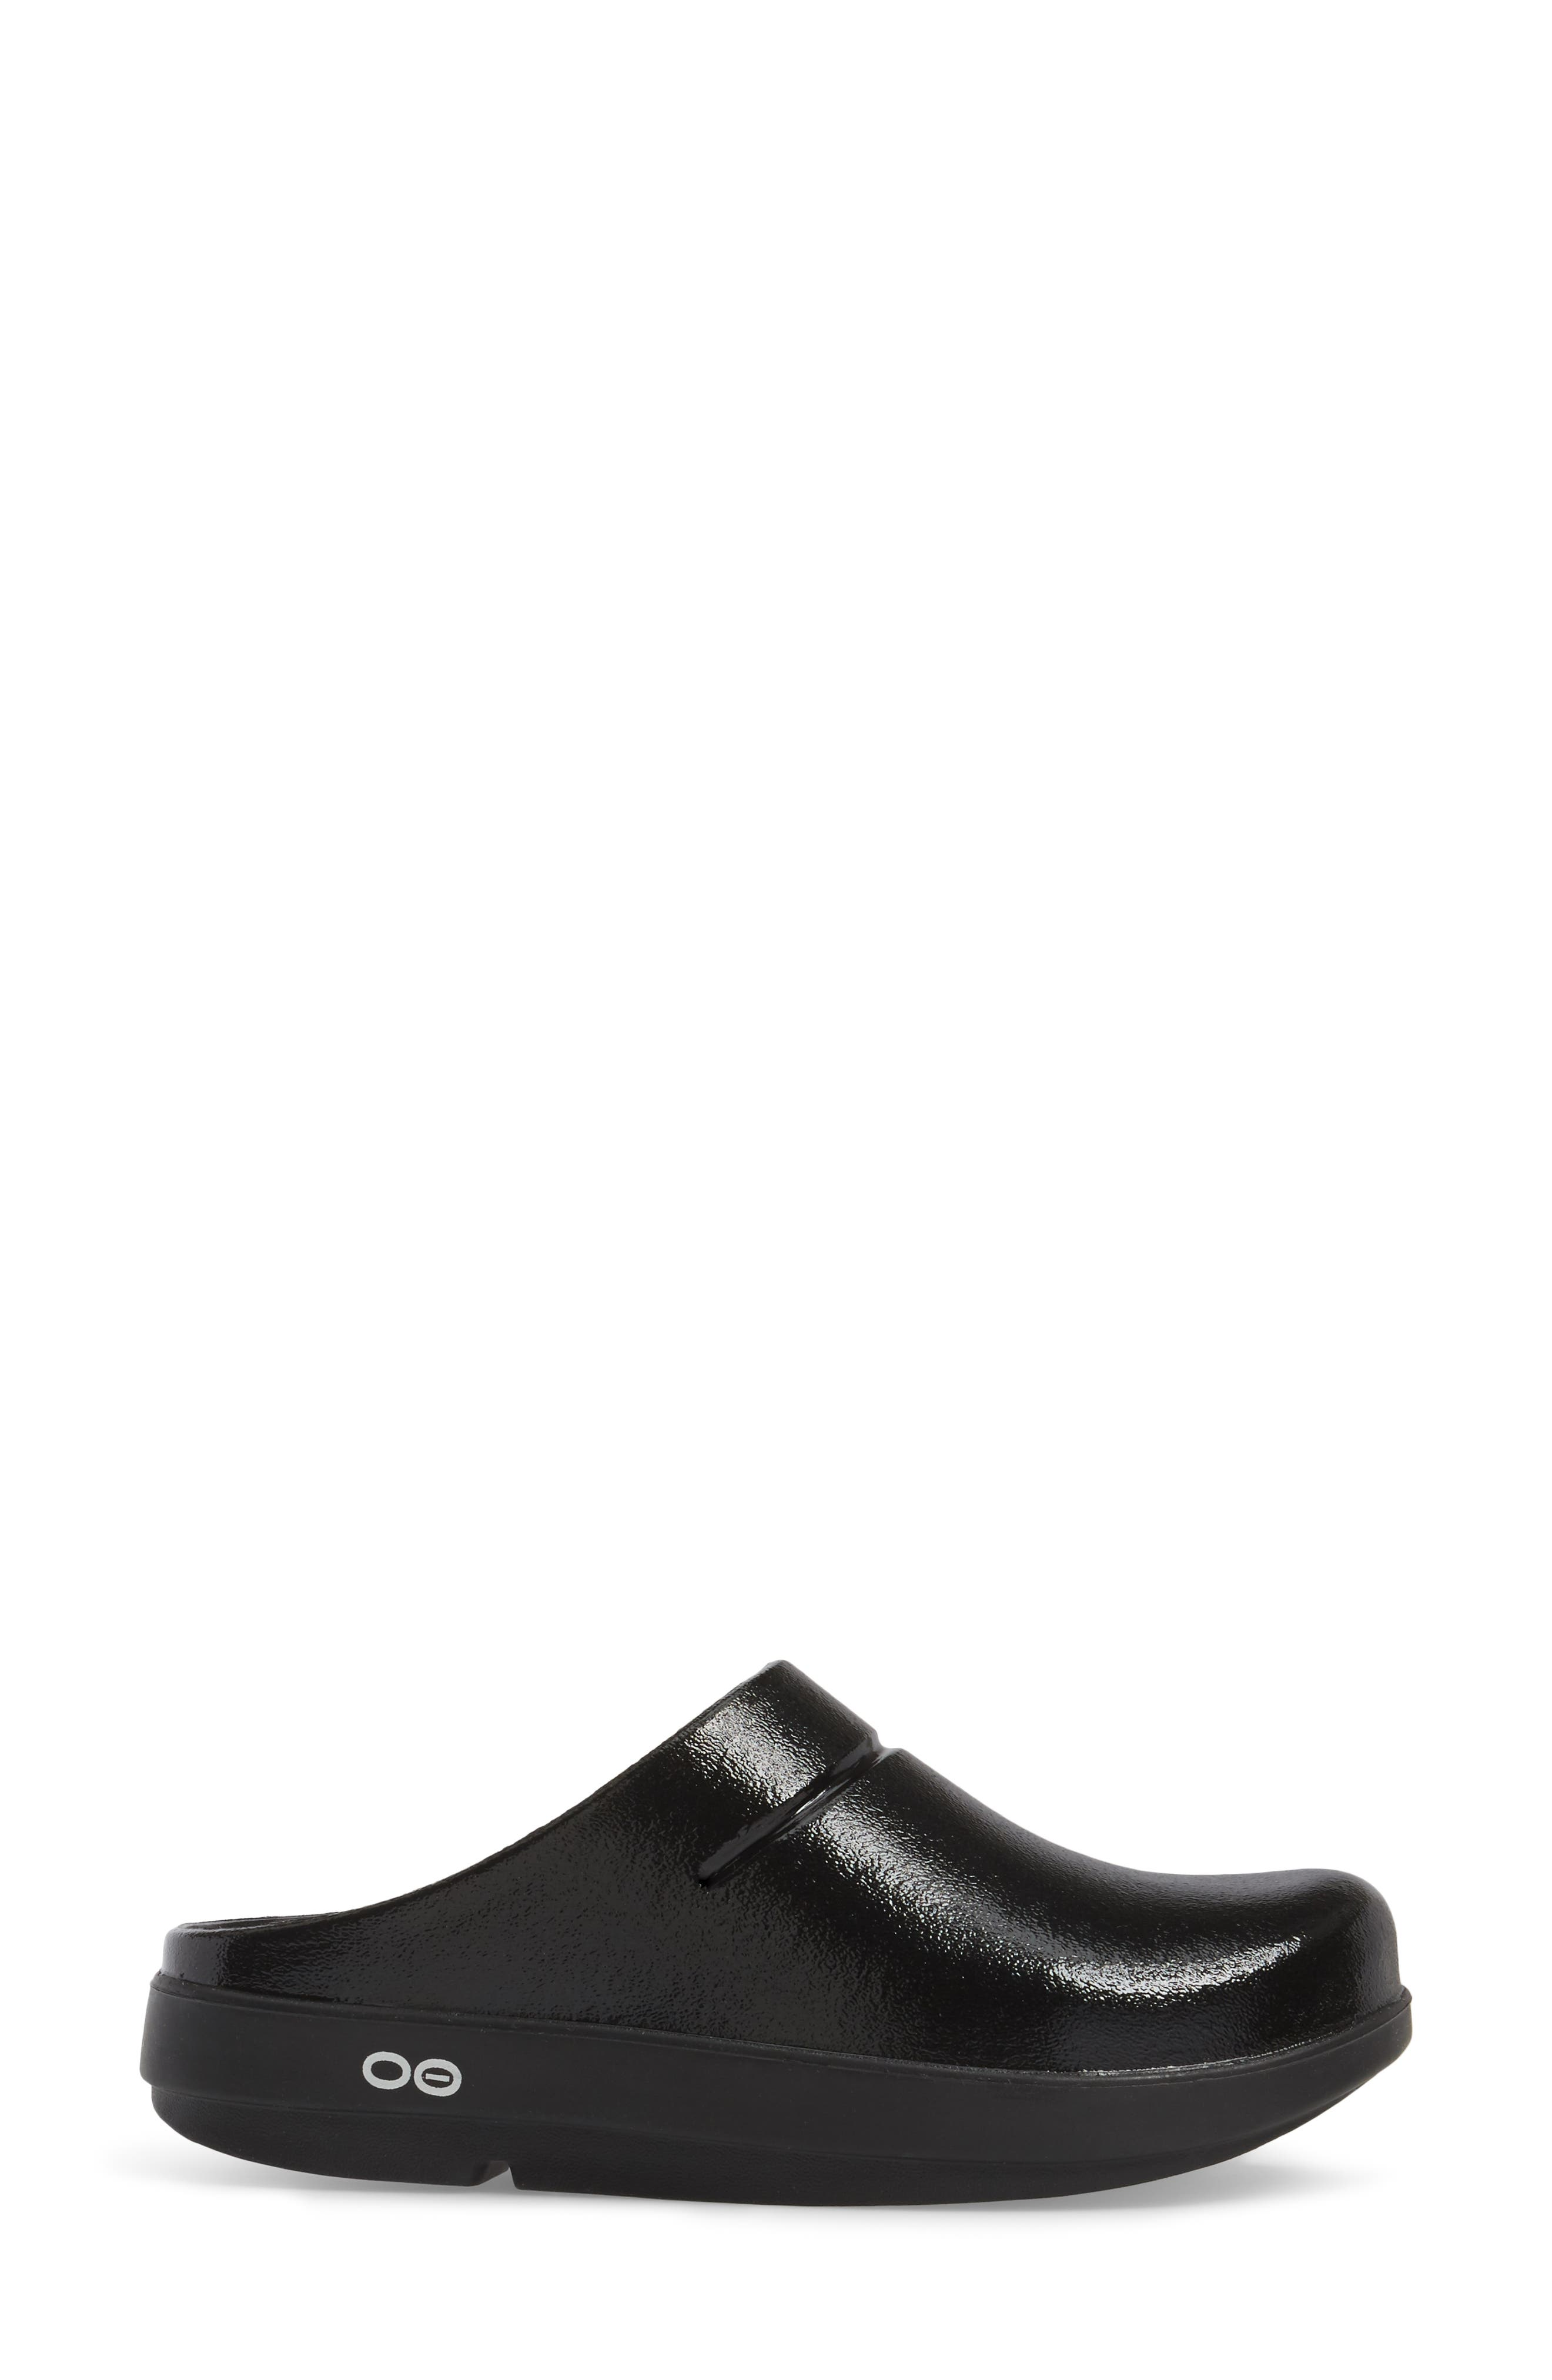 OOcloog Luxe Clog,                             Alternate thumbnail 3, color,                             001